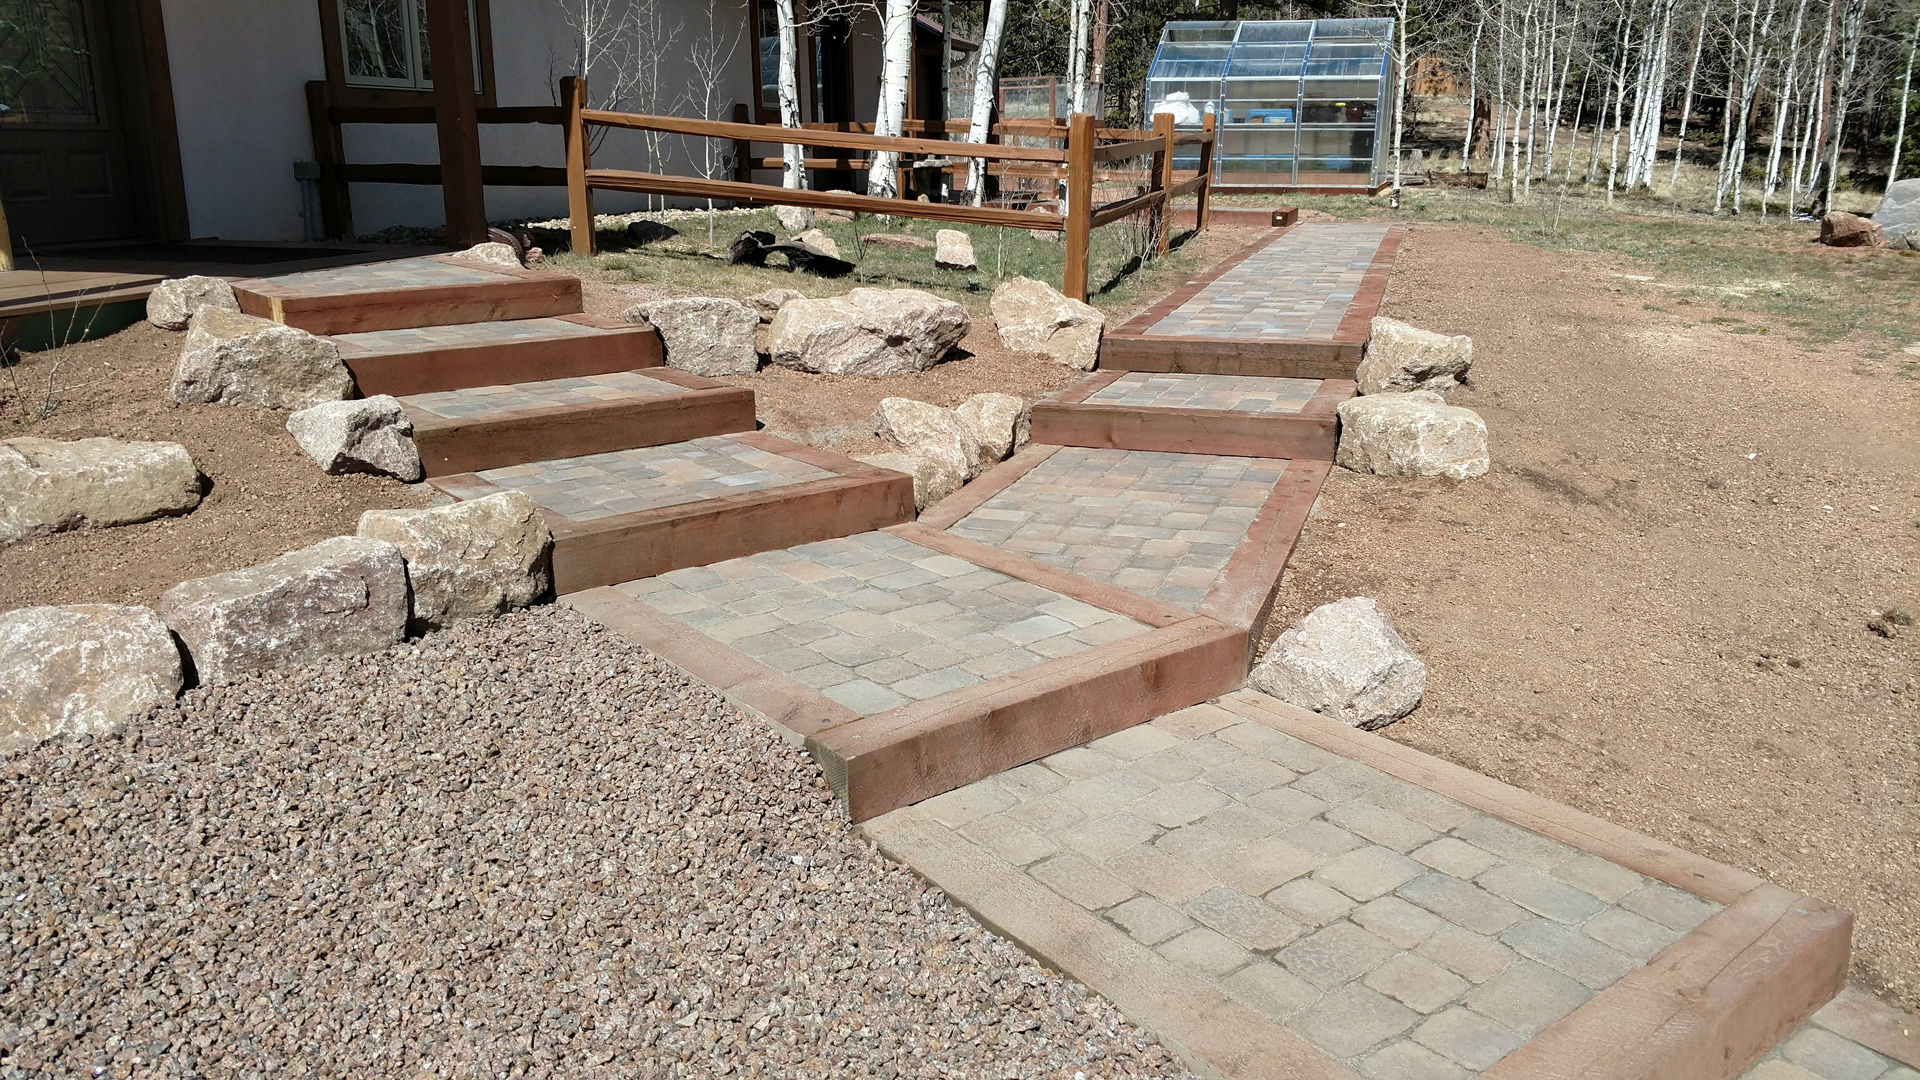 Paver walkway with timber border steps and boulder work in Woodland Park, Colorado